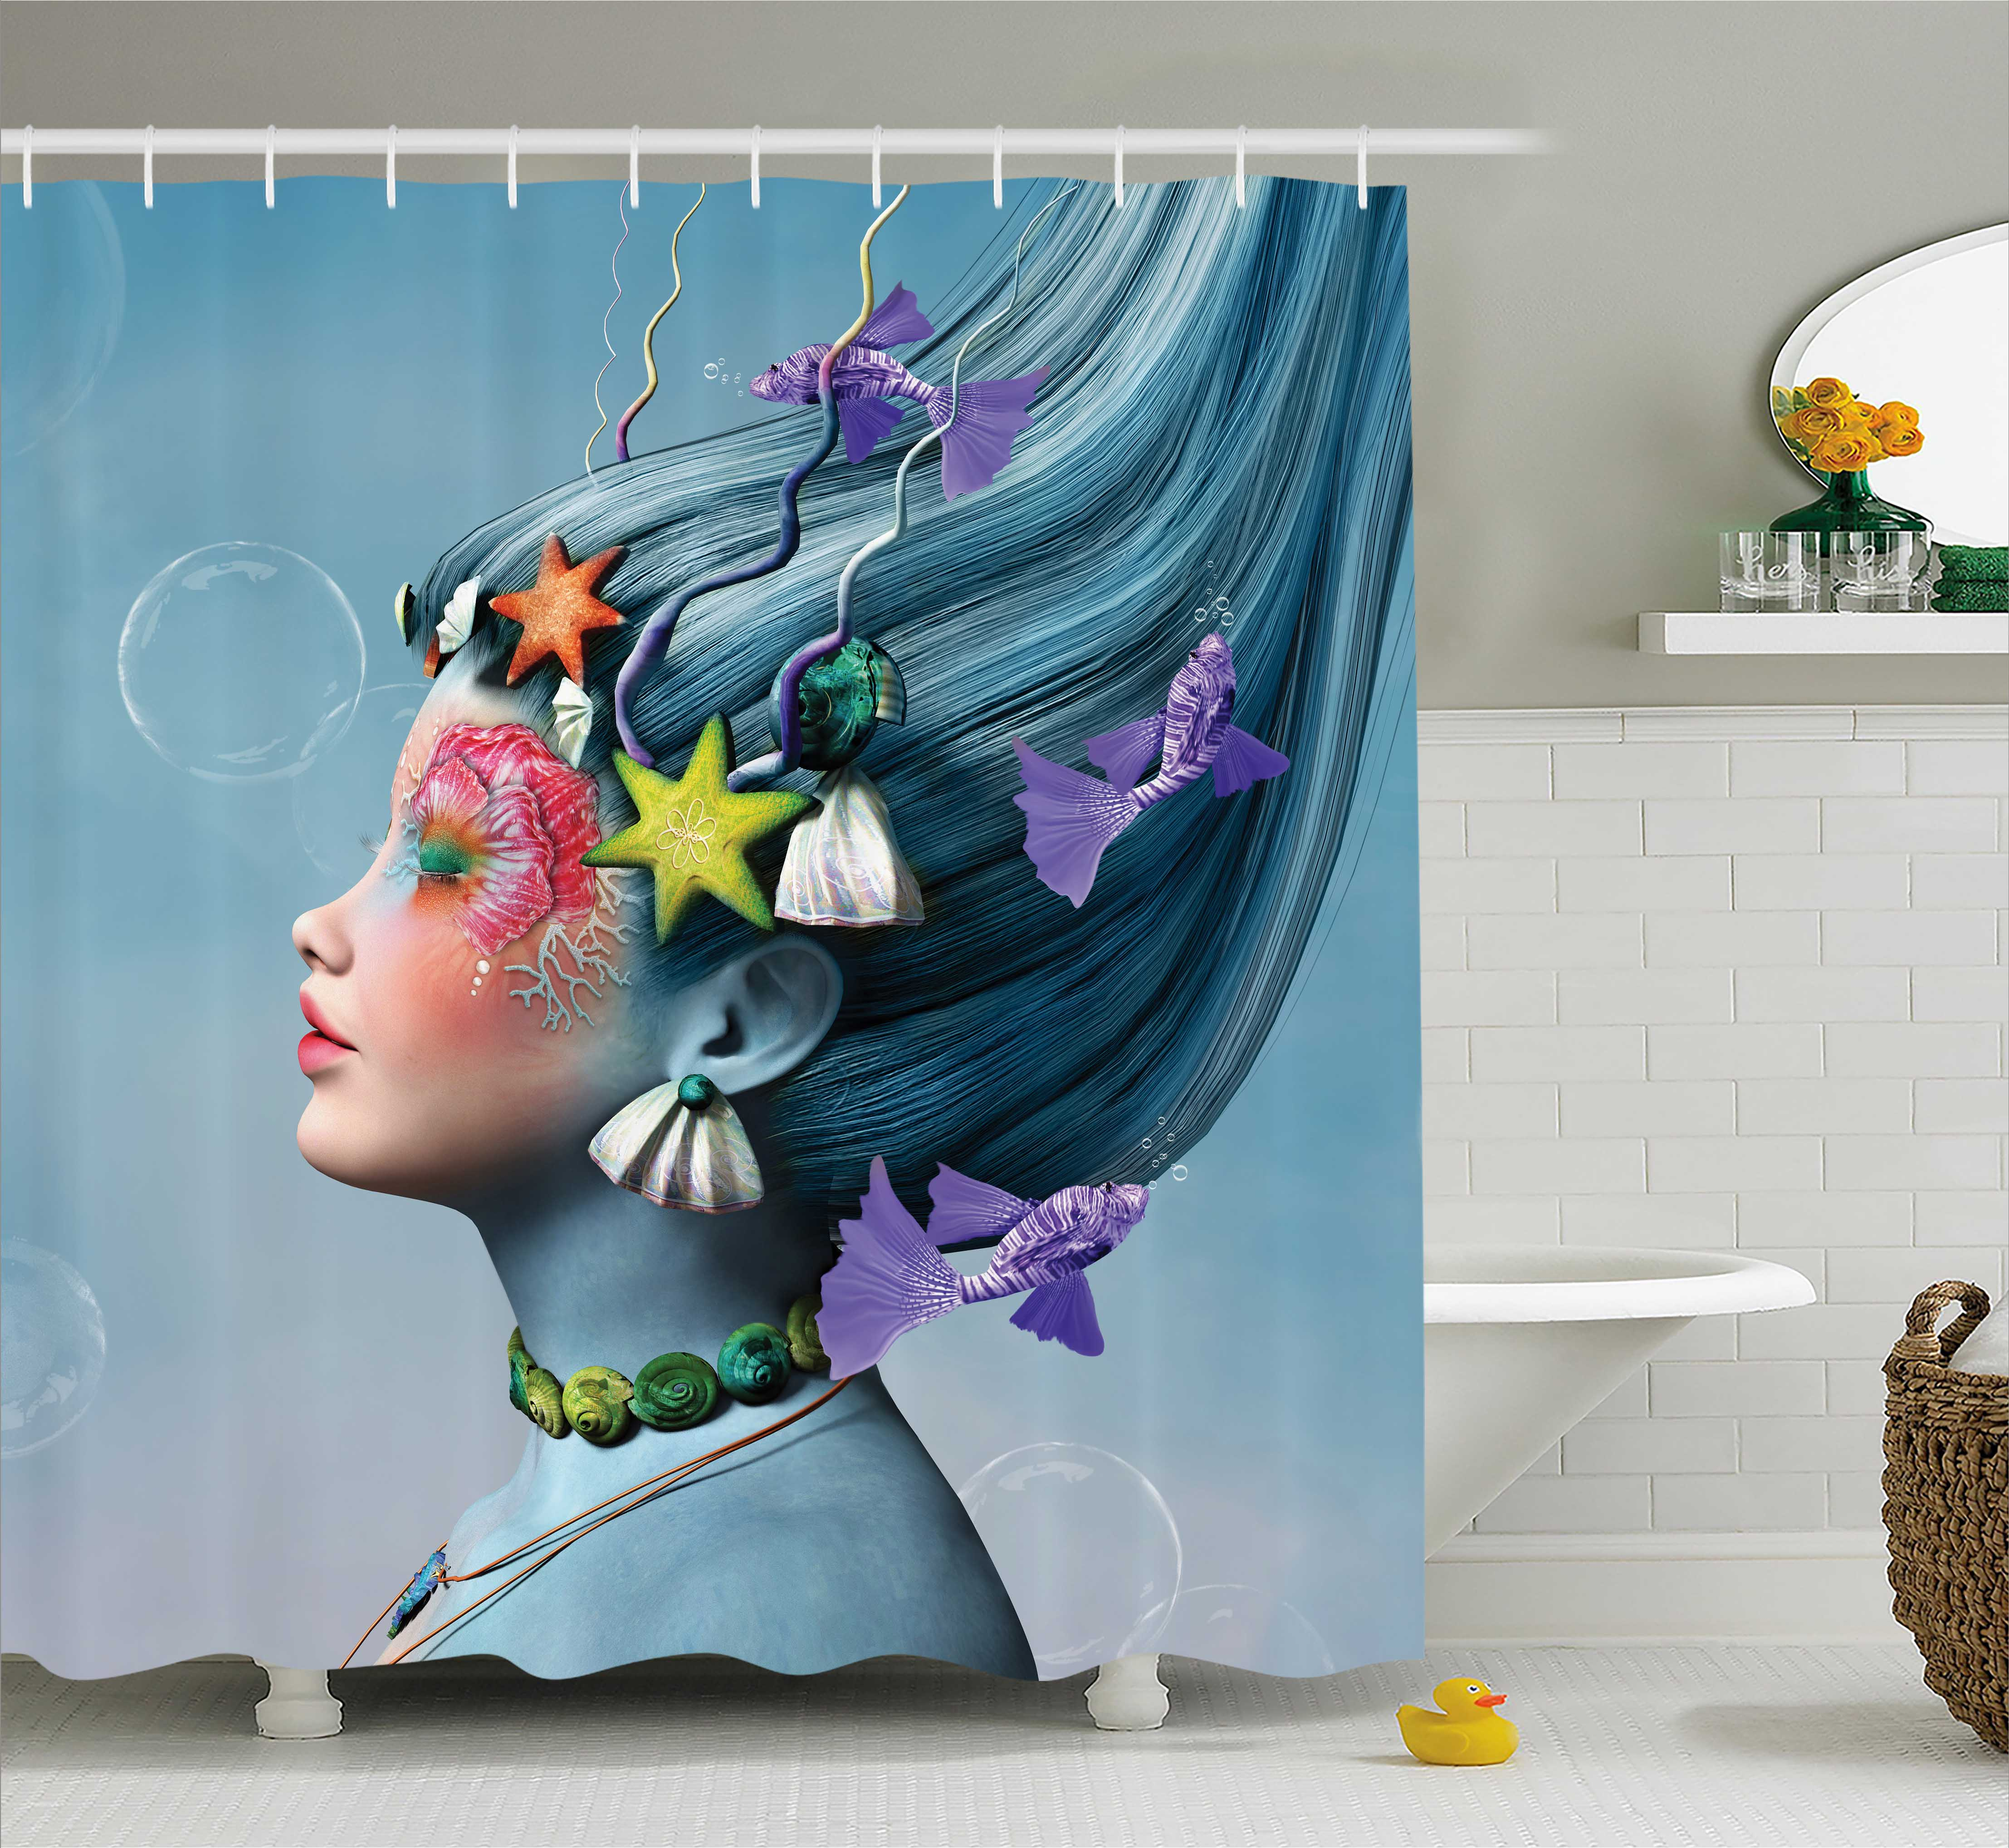 Mermaid Shower Curtain, Woman with Underwater Themed Make Up Hairstyle Starfishes Seashells Fishes Bubbles, Fabric Bathroom Set with Hooks, 69W X 70L Inches, Multicolor, by Ambesonne